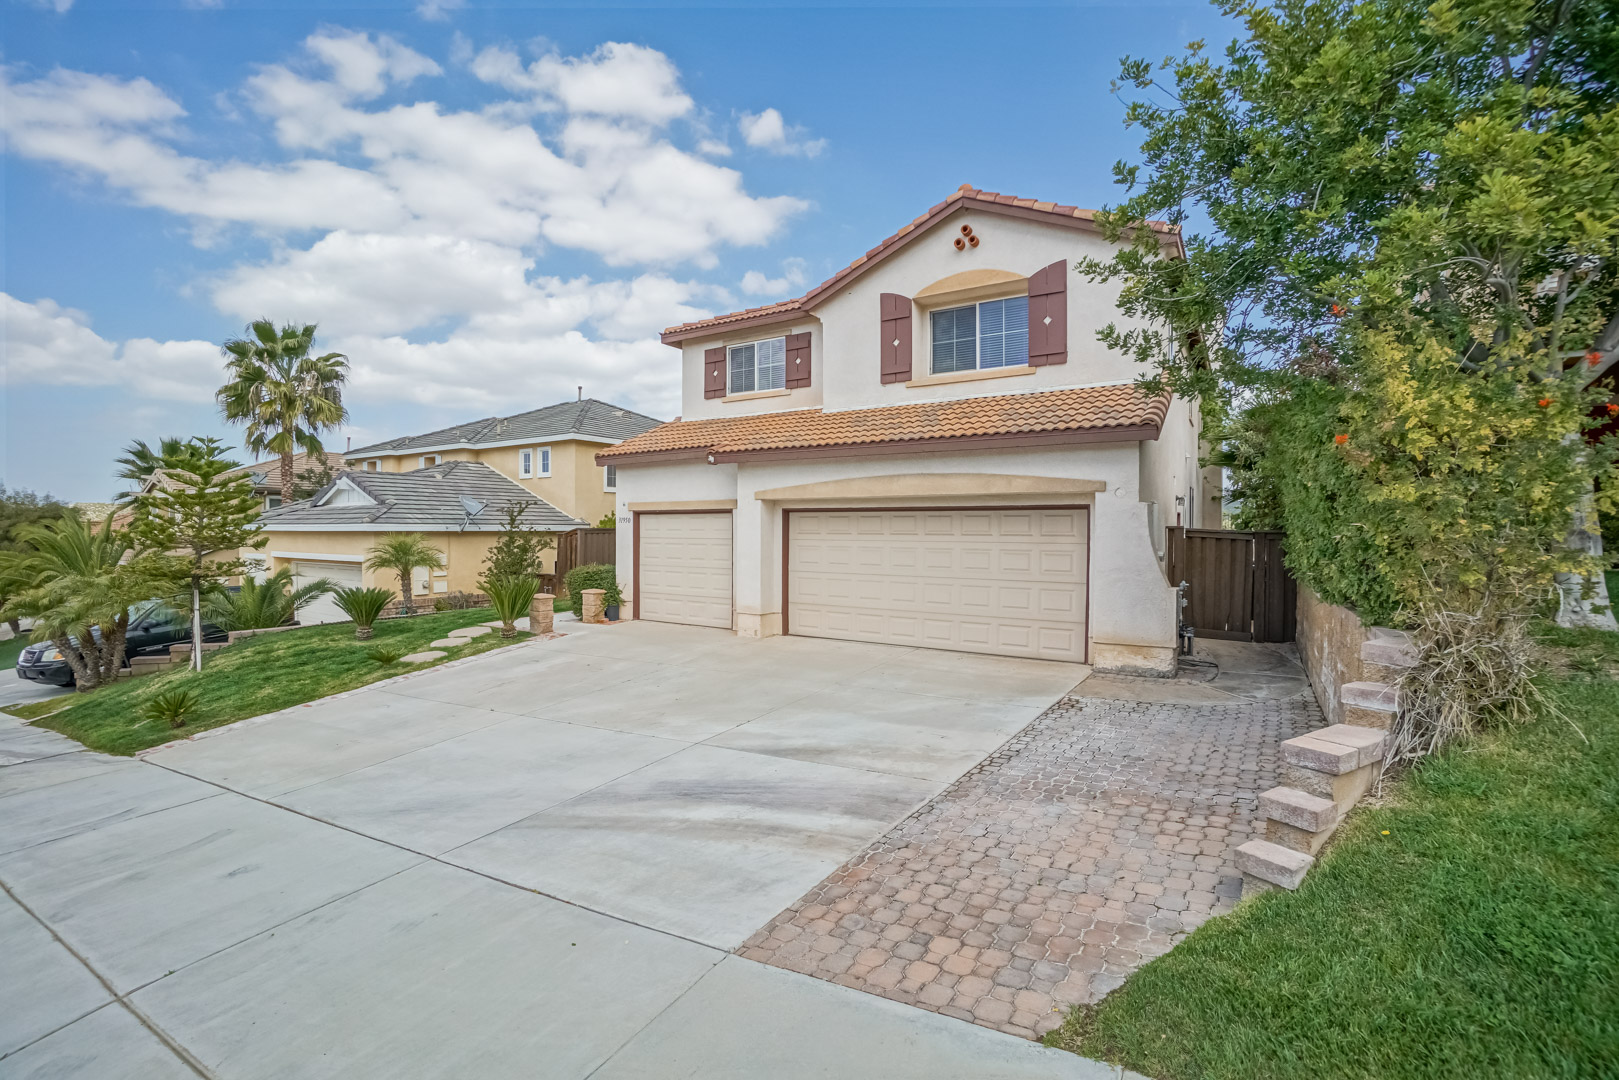 31950 Daisyfield Ct. Lake Elsinore, Ca. 92532